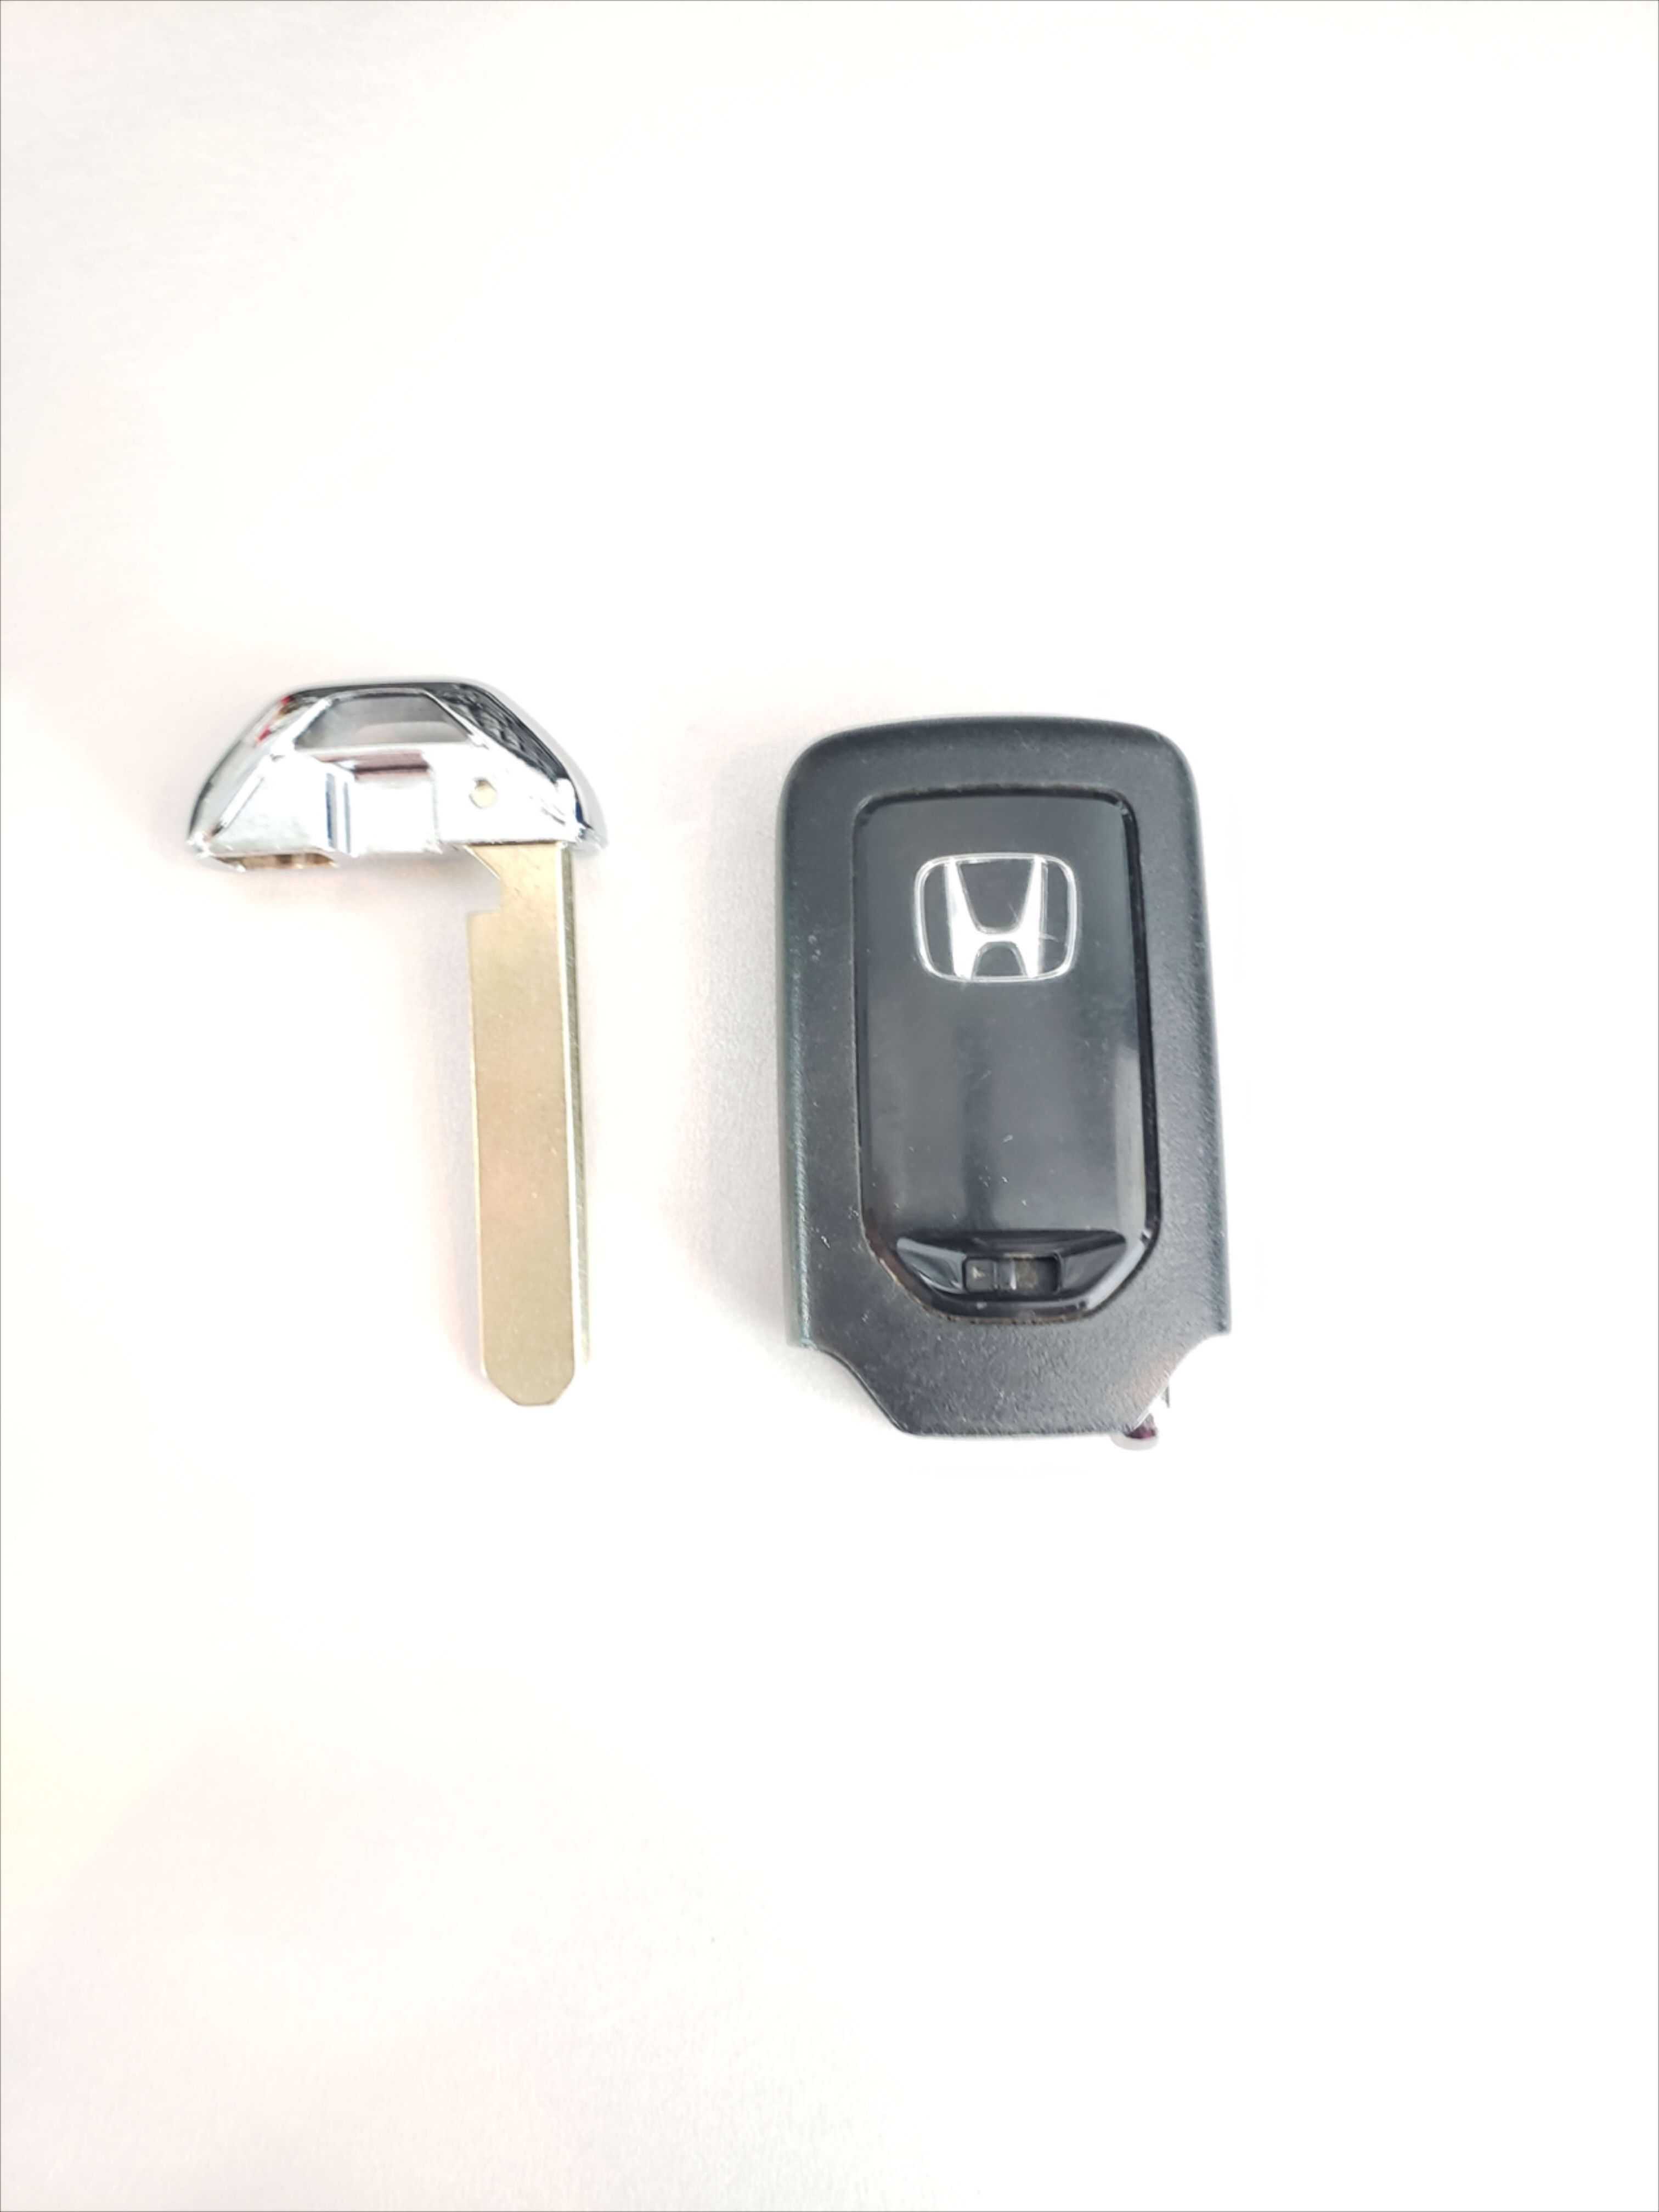 Acura Tlx Keys Replacement In 2020 Car Key Replacement Lost Car